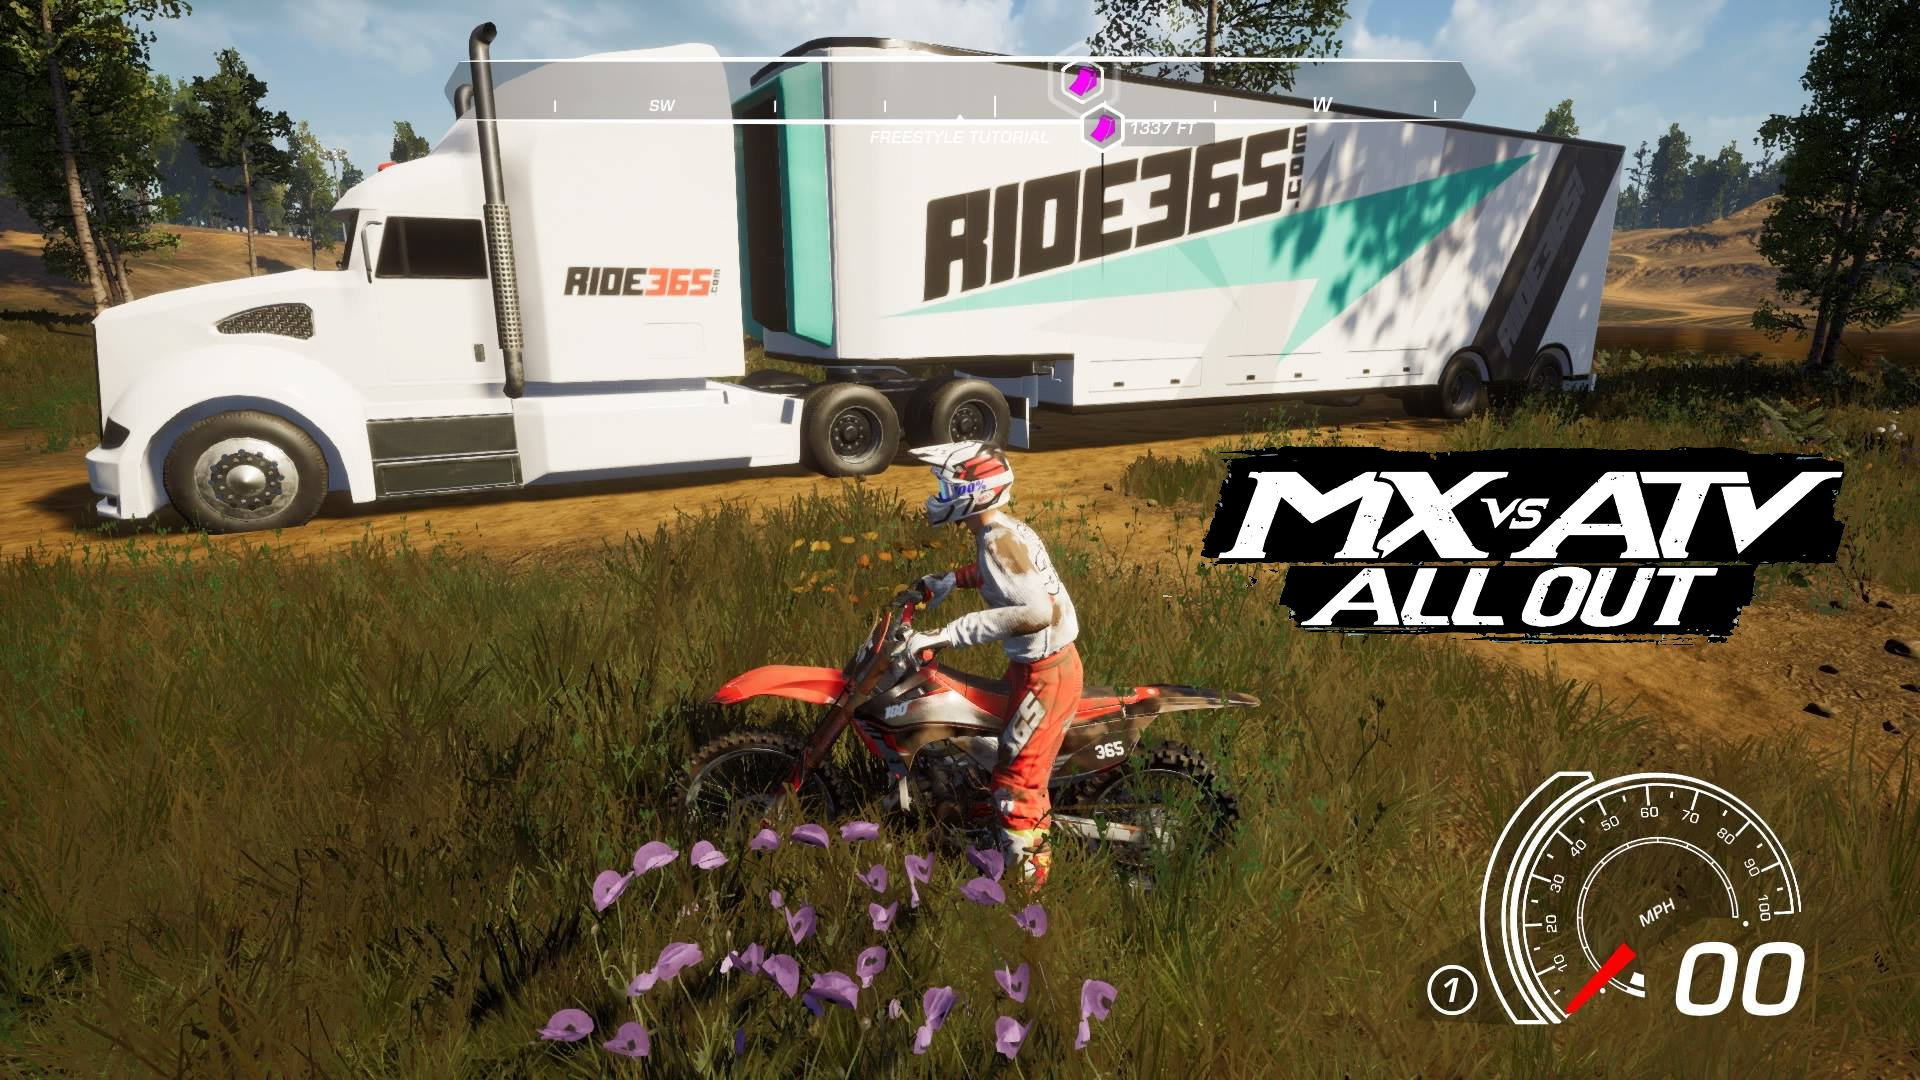 RIDE365 com featured in MX vs ATV All Out